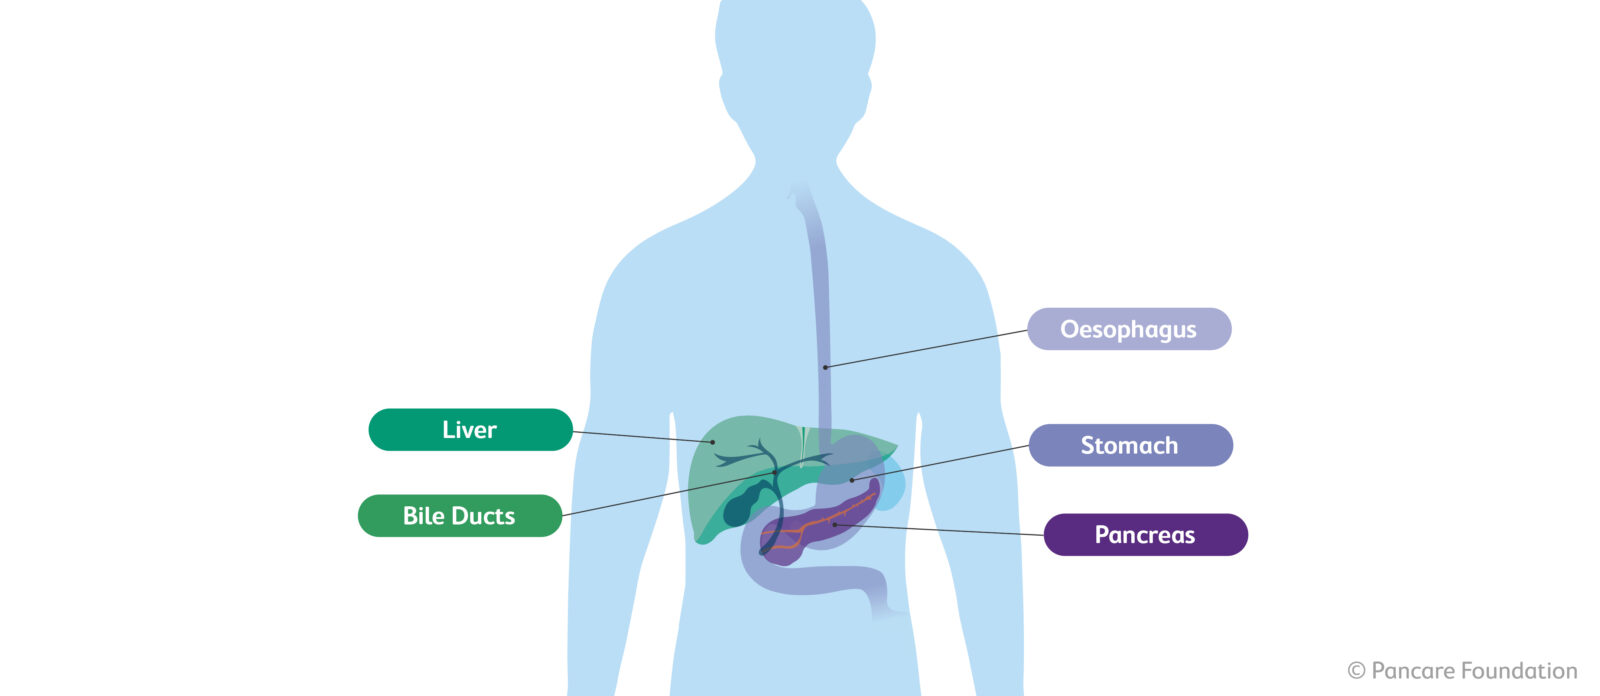 What is upper gastrointestinal cancer?